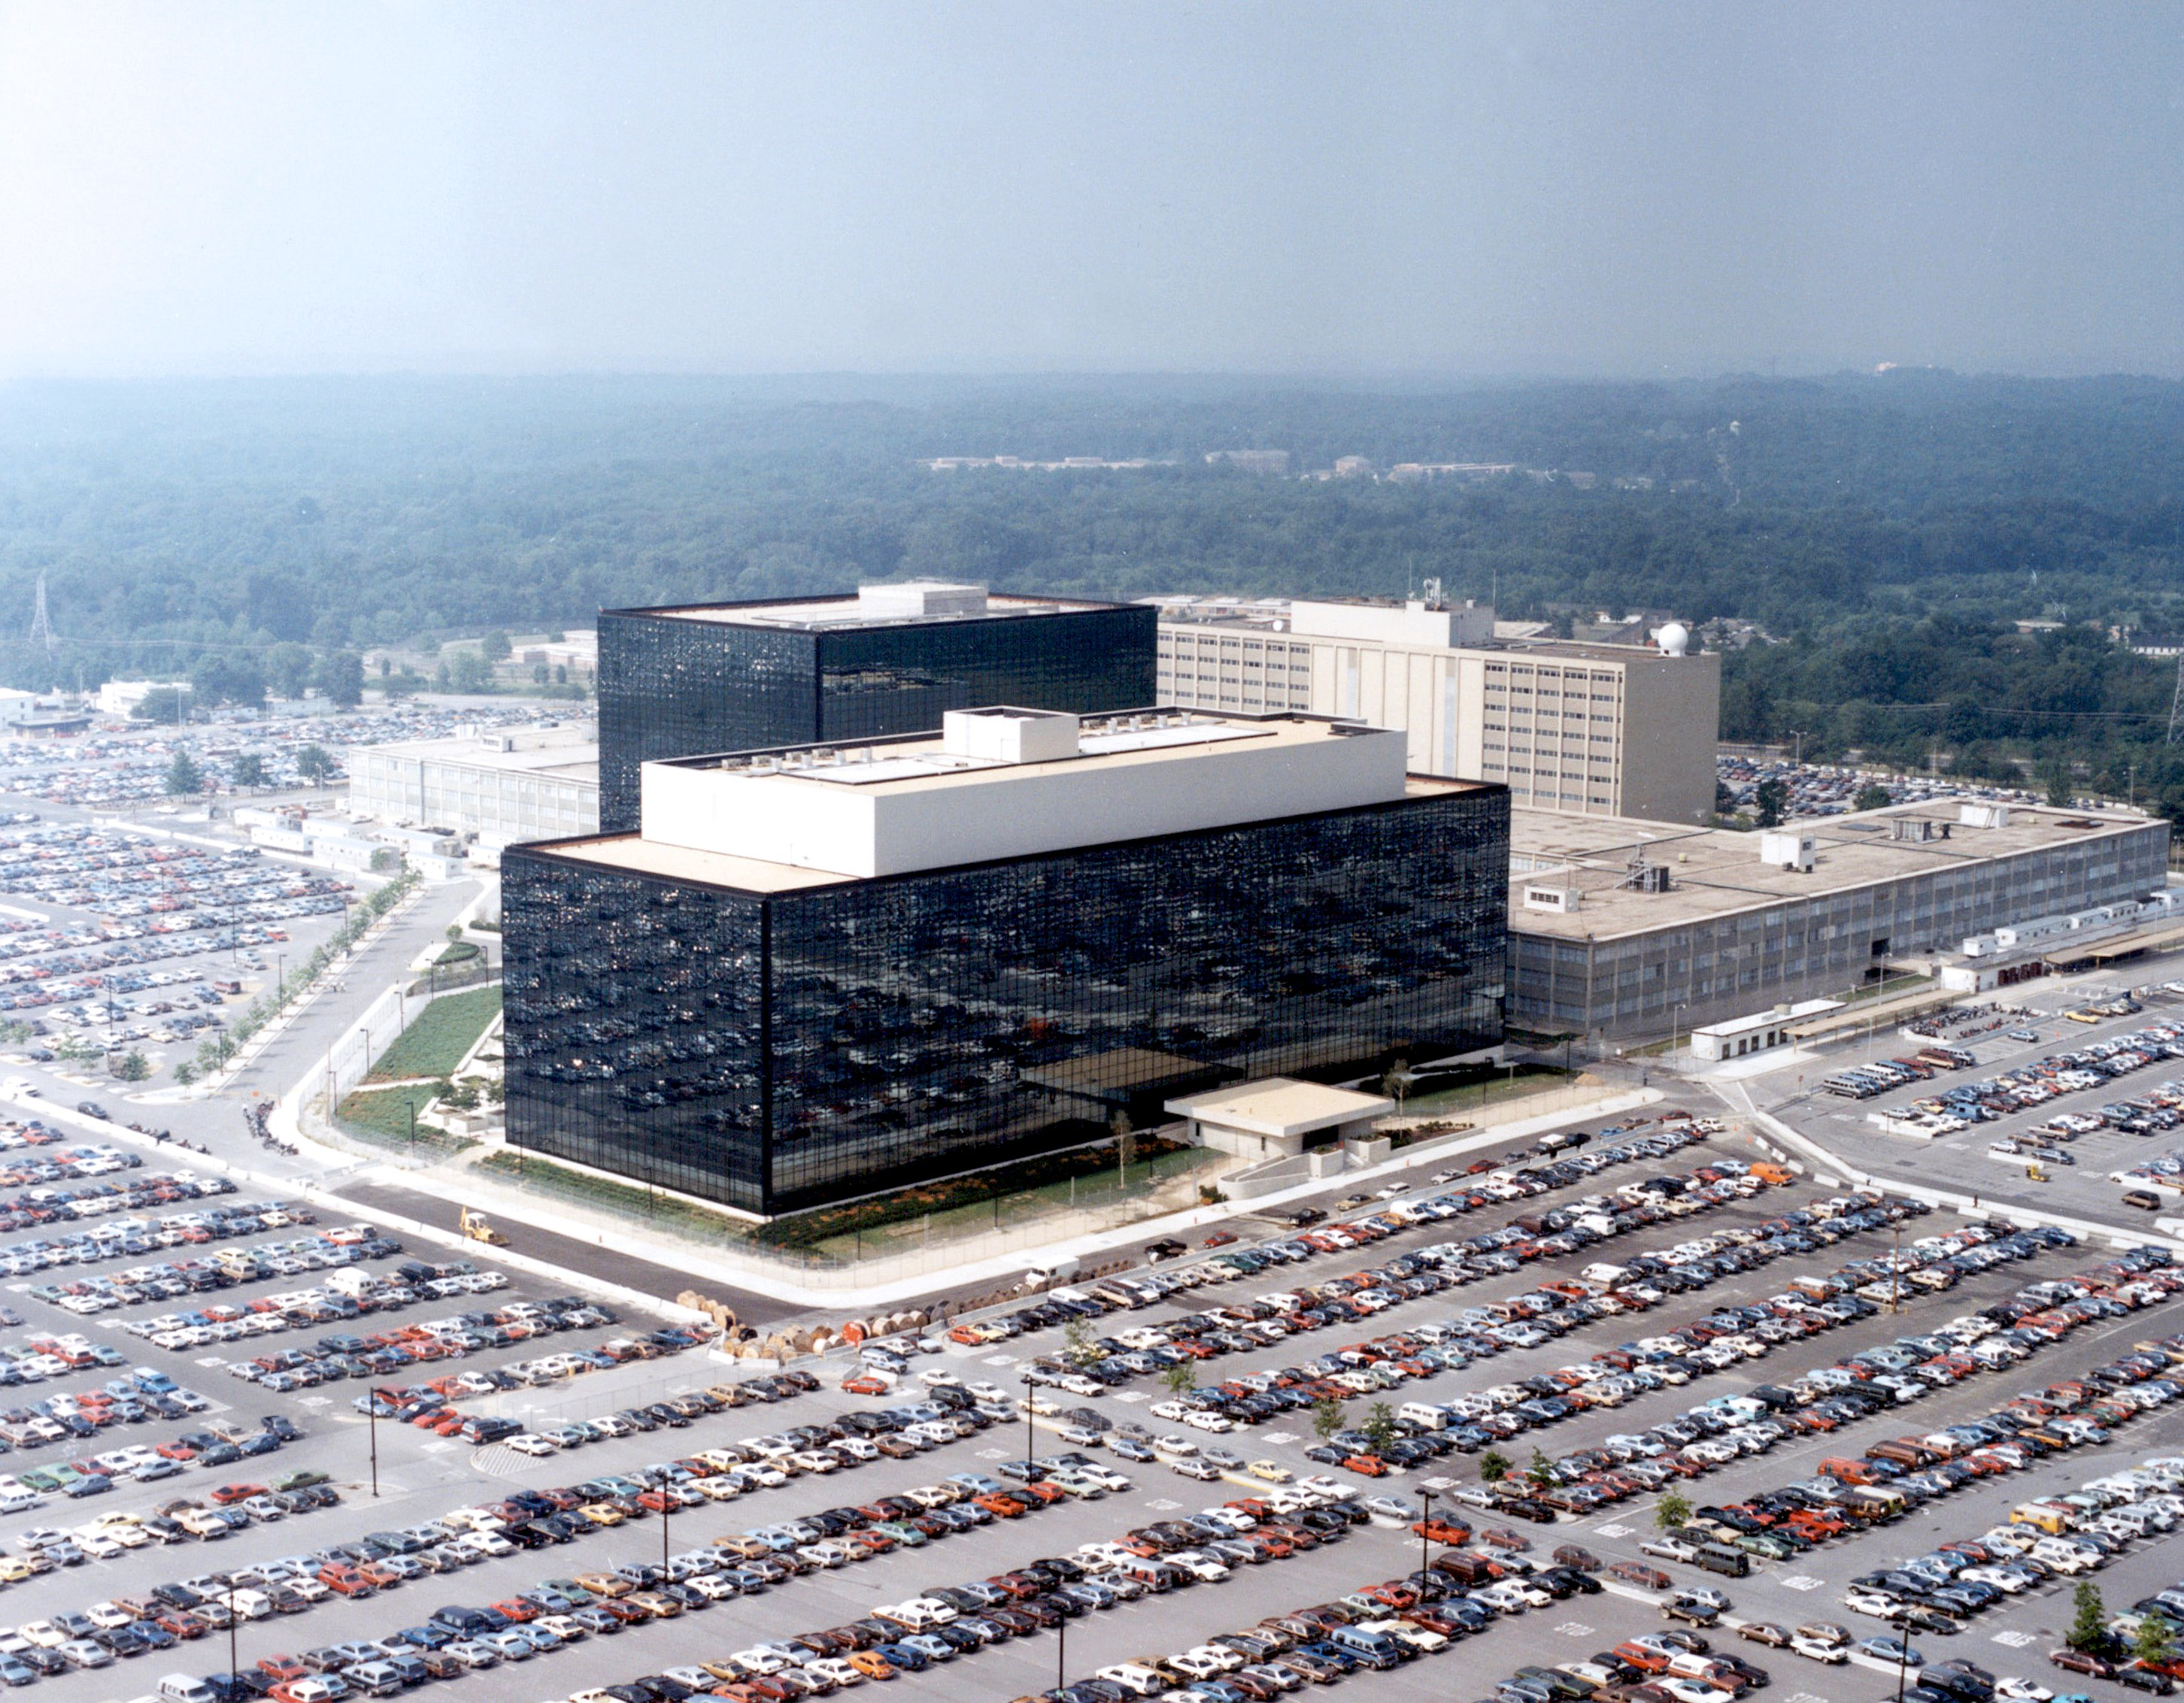 National_Security_Agency_headquarters,_Fort_Meade,_Maryland[1]